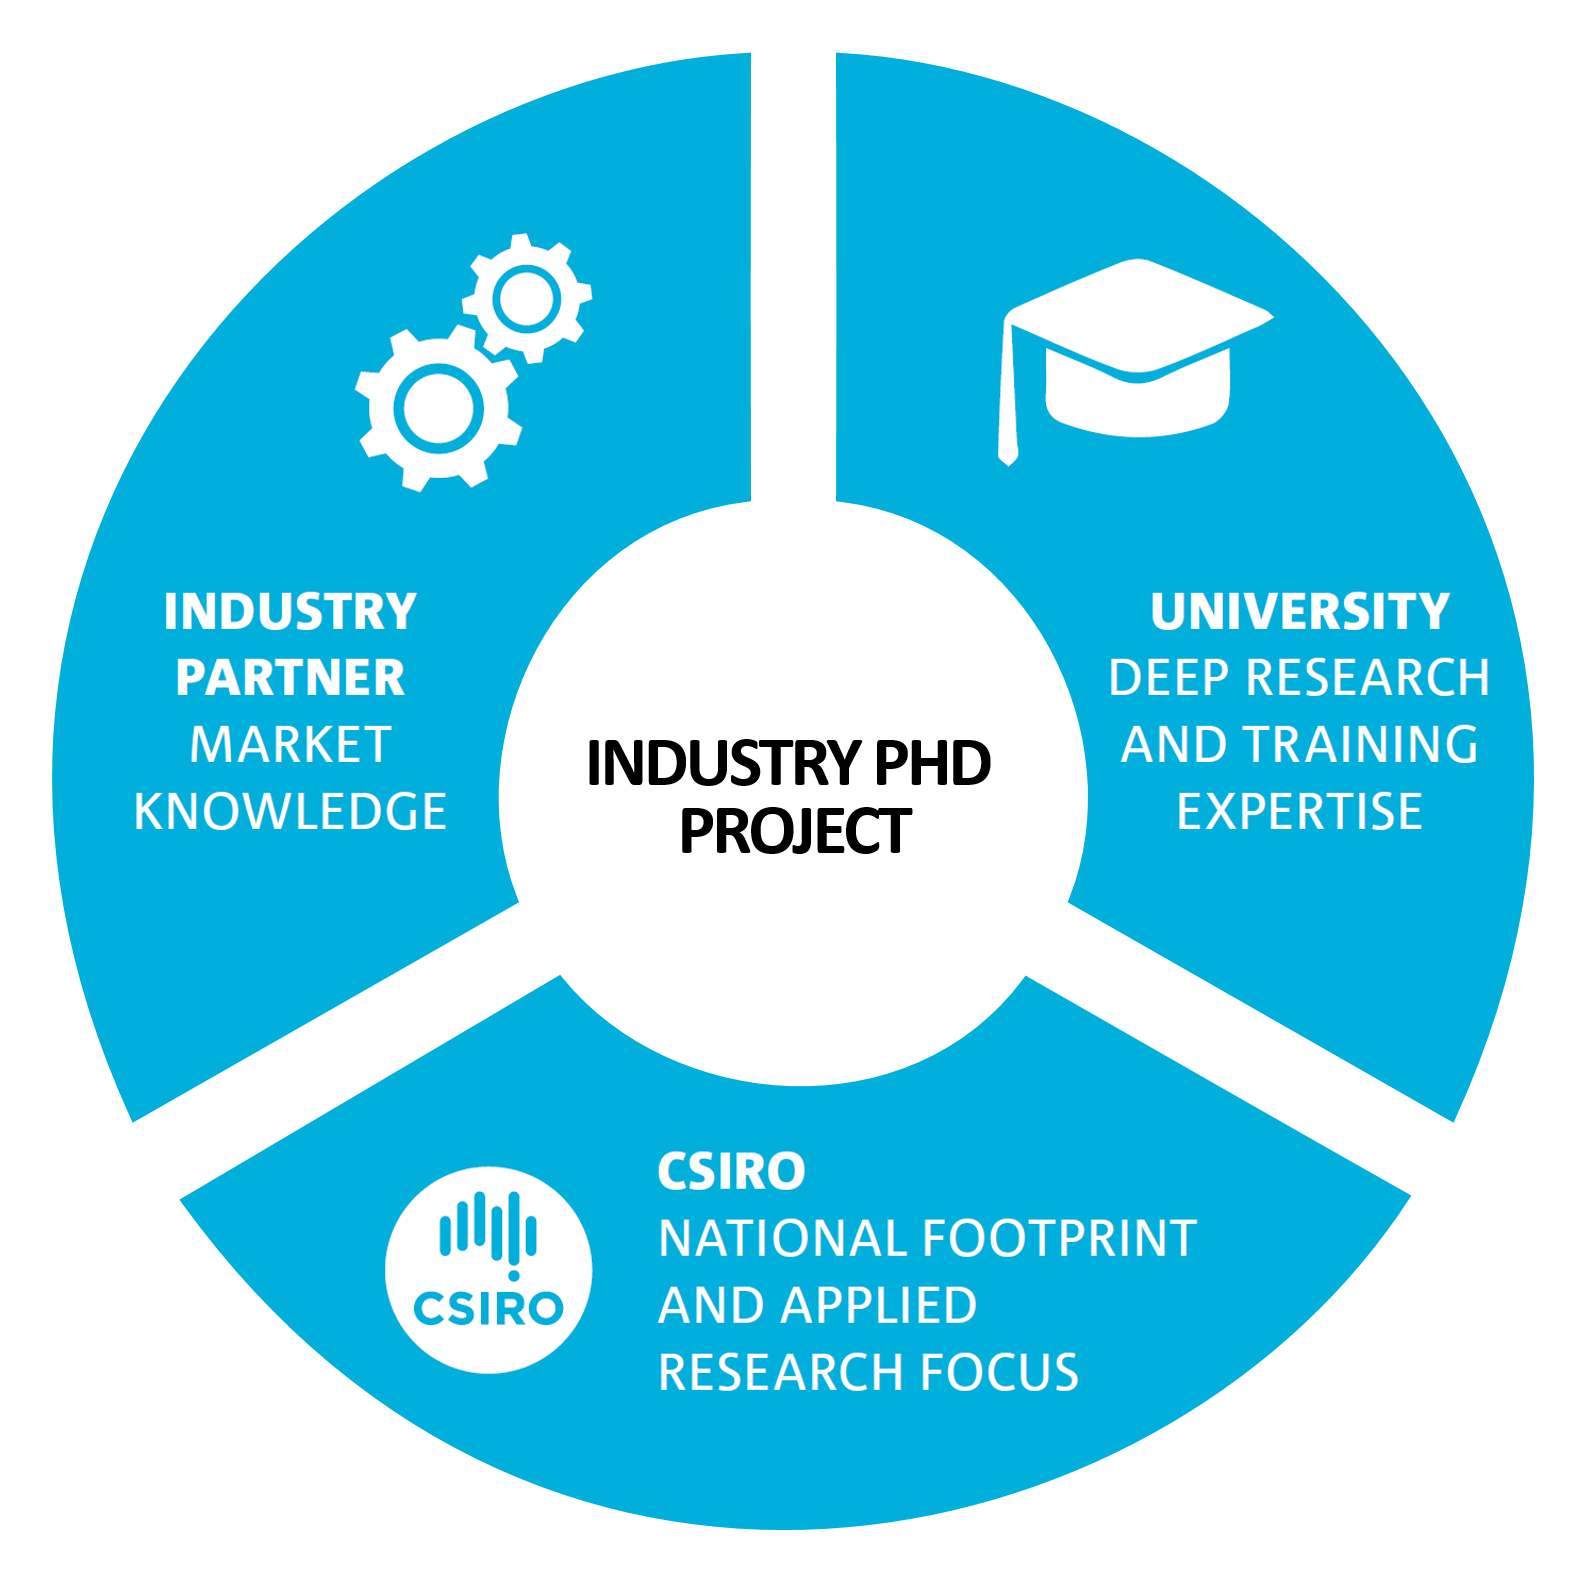 A pie diagram showing the three partners in the Industry PhD project and displaying the text, industry partner - market knowledge, university - deep research and training expertise, and CSIRO - national footprint and applied research focus.